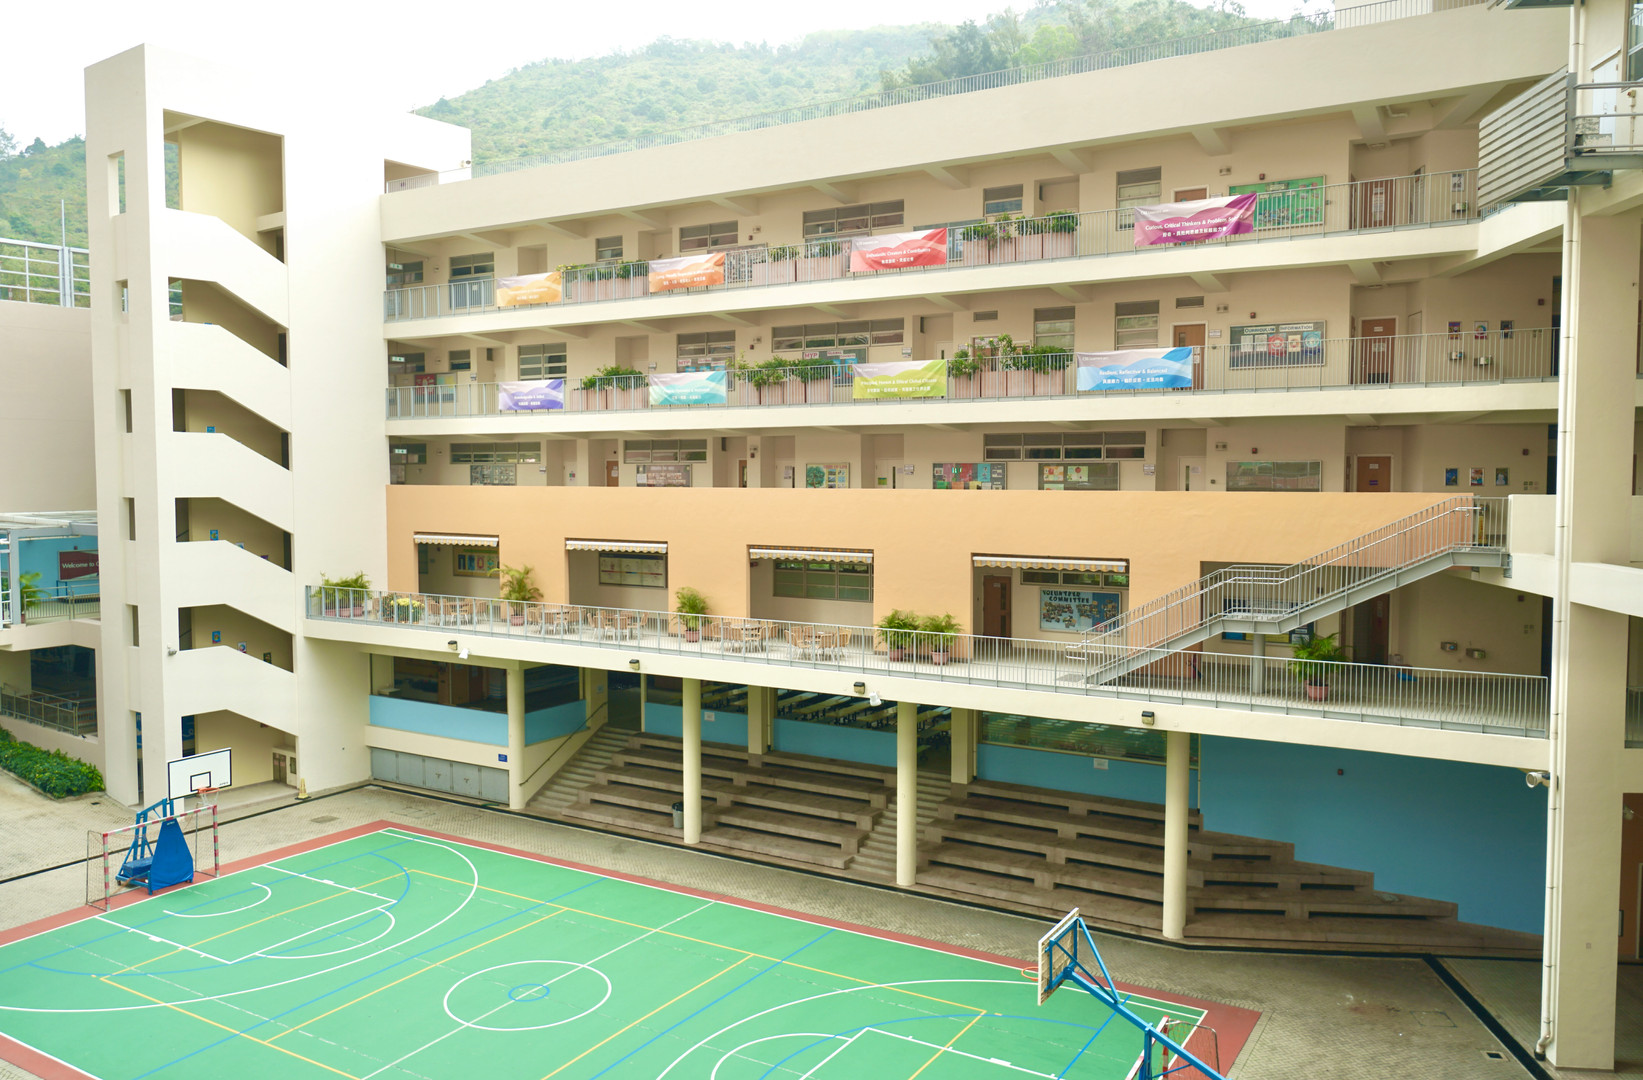 Block B & Ball Court B